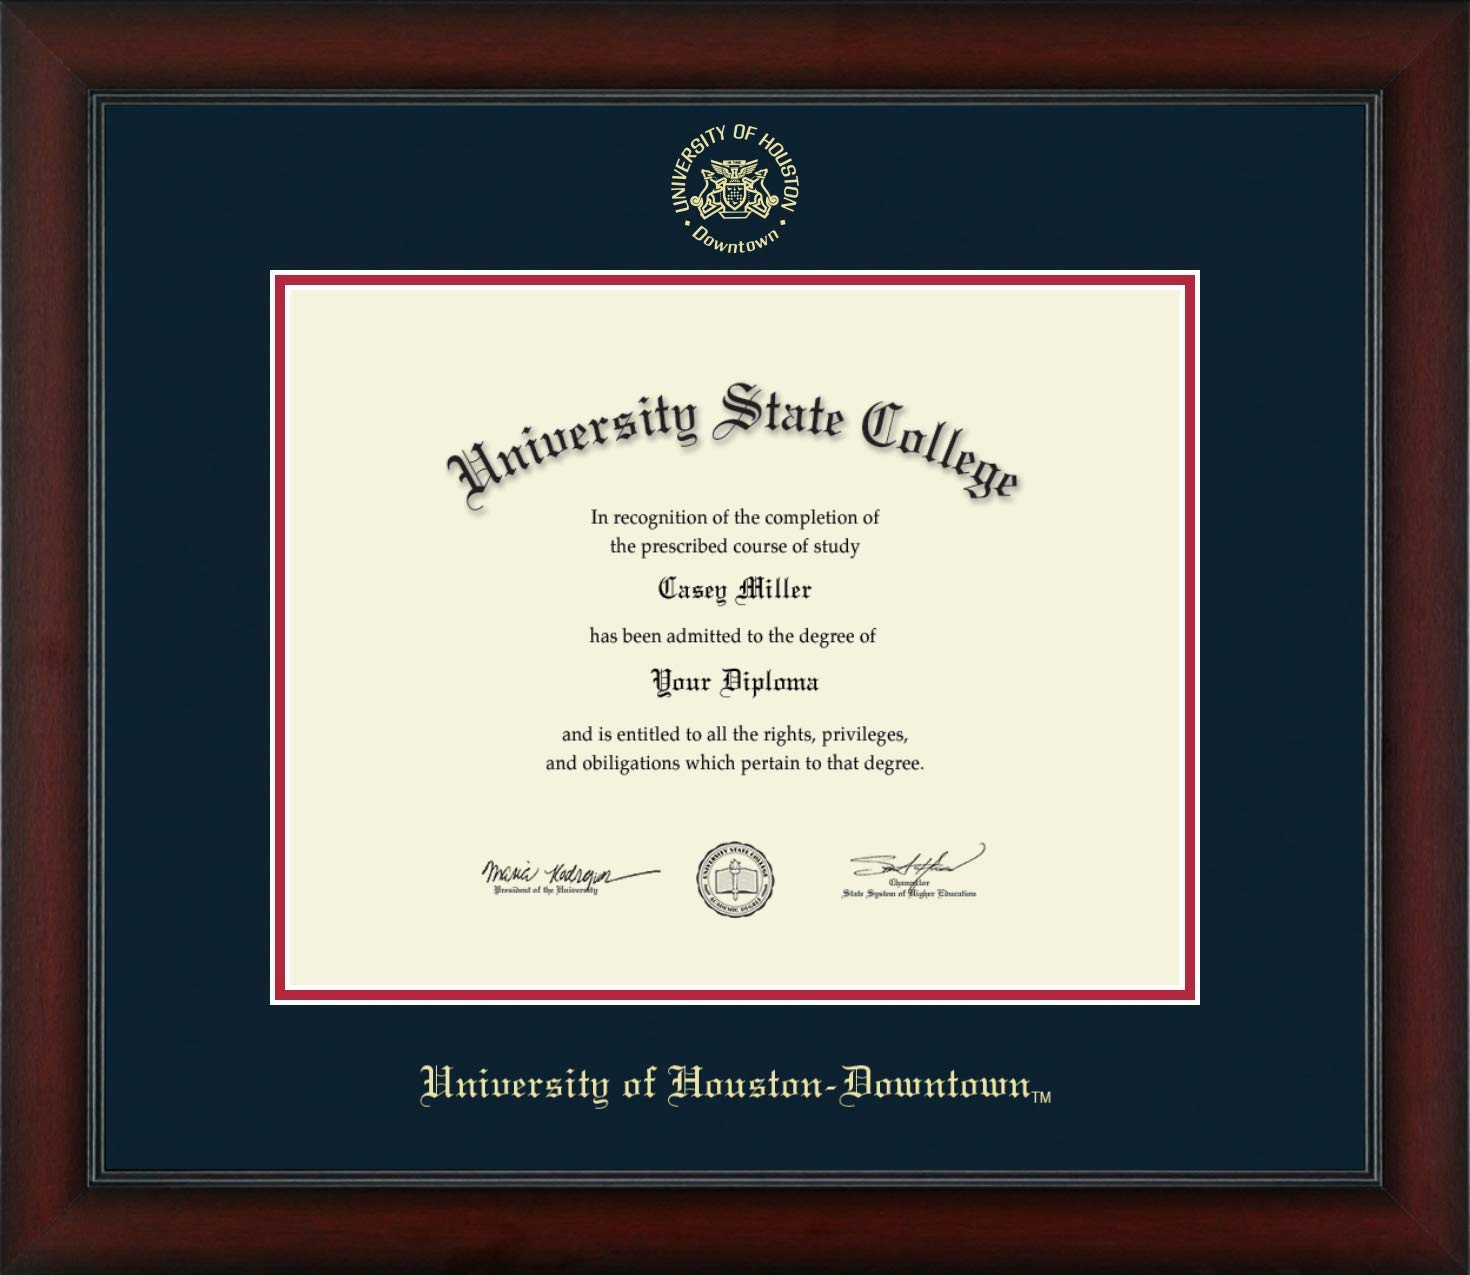 University of Houston Downtown - Officially Licensed - Gold Embossed Diploma Frame - Diploma Size 14'' x 11''